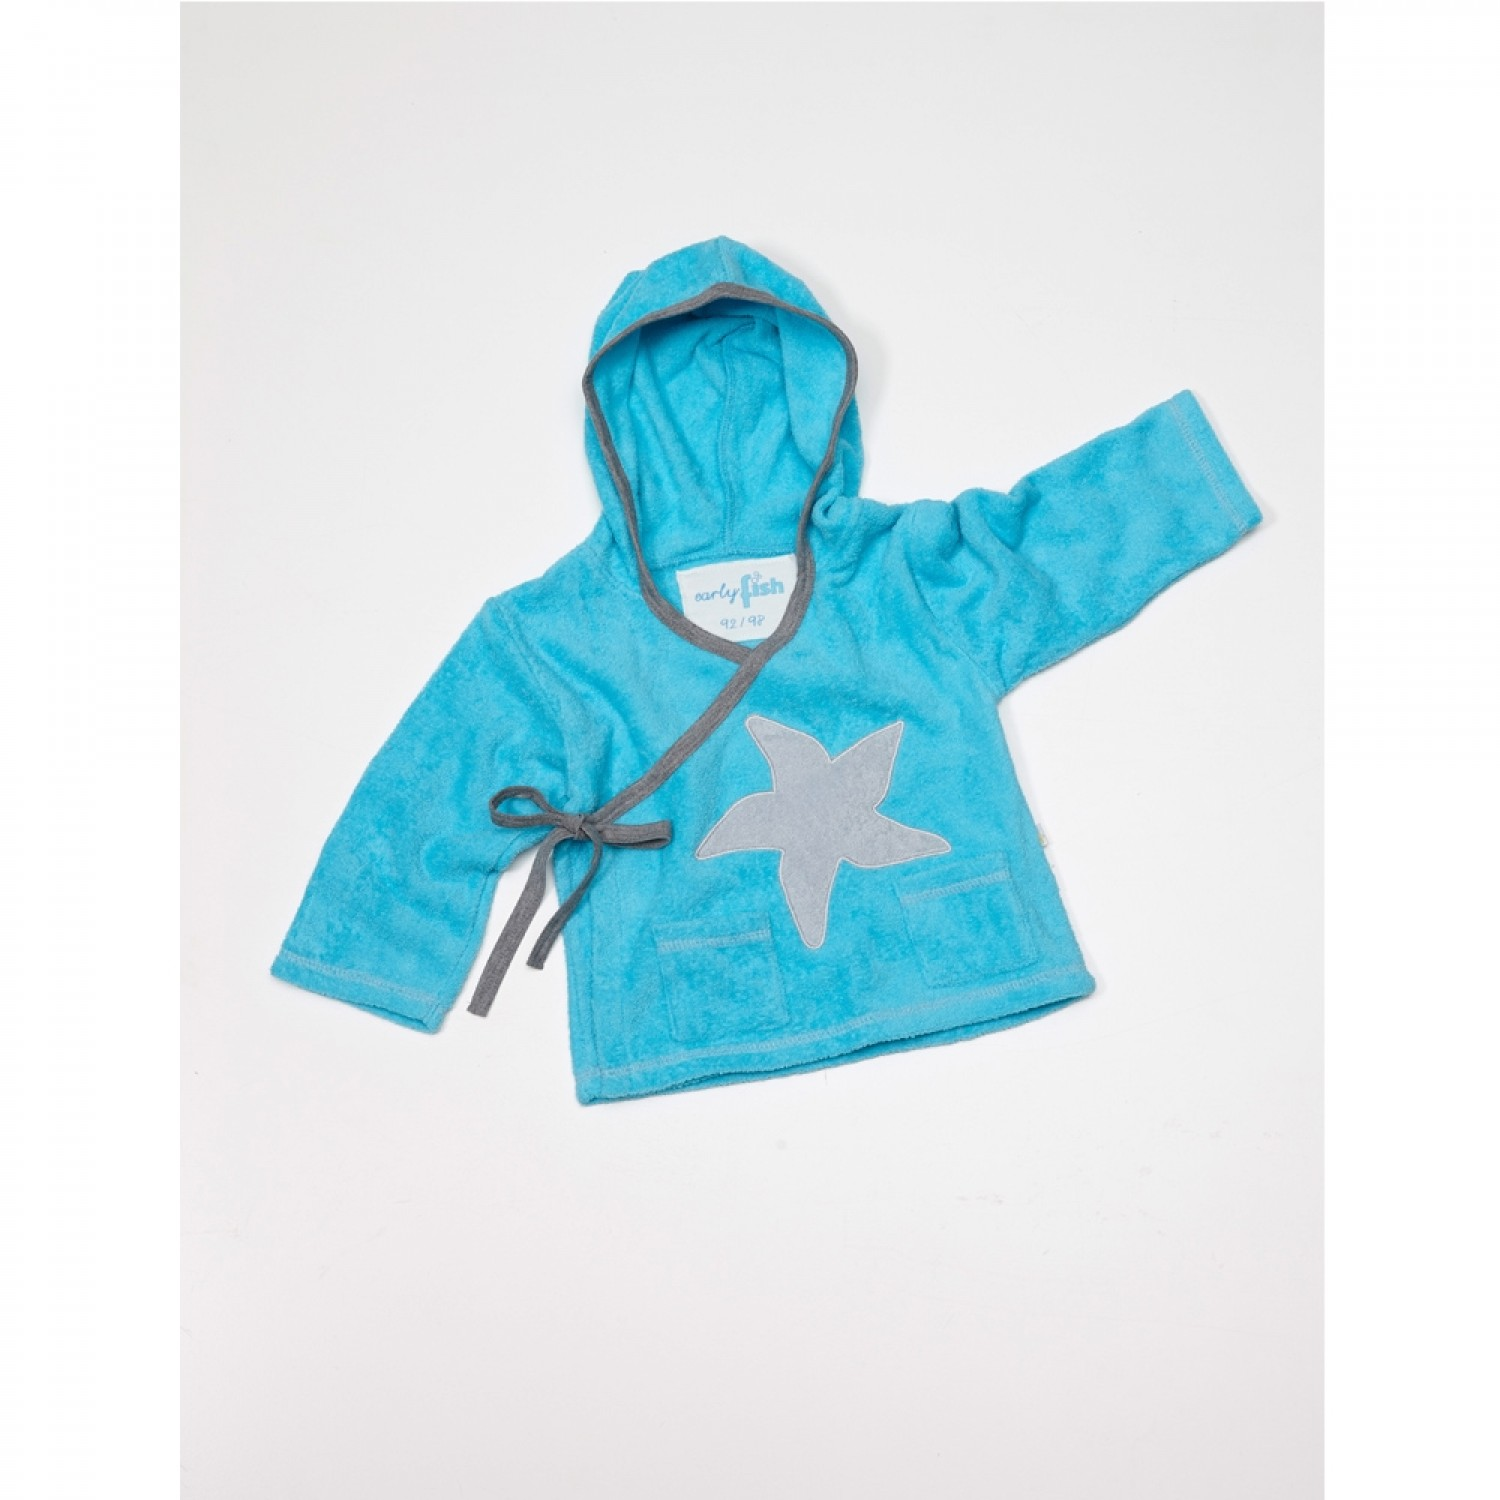 Organic Wrap Top with Hood for Kids, sea blue with starfish